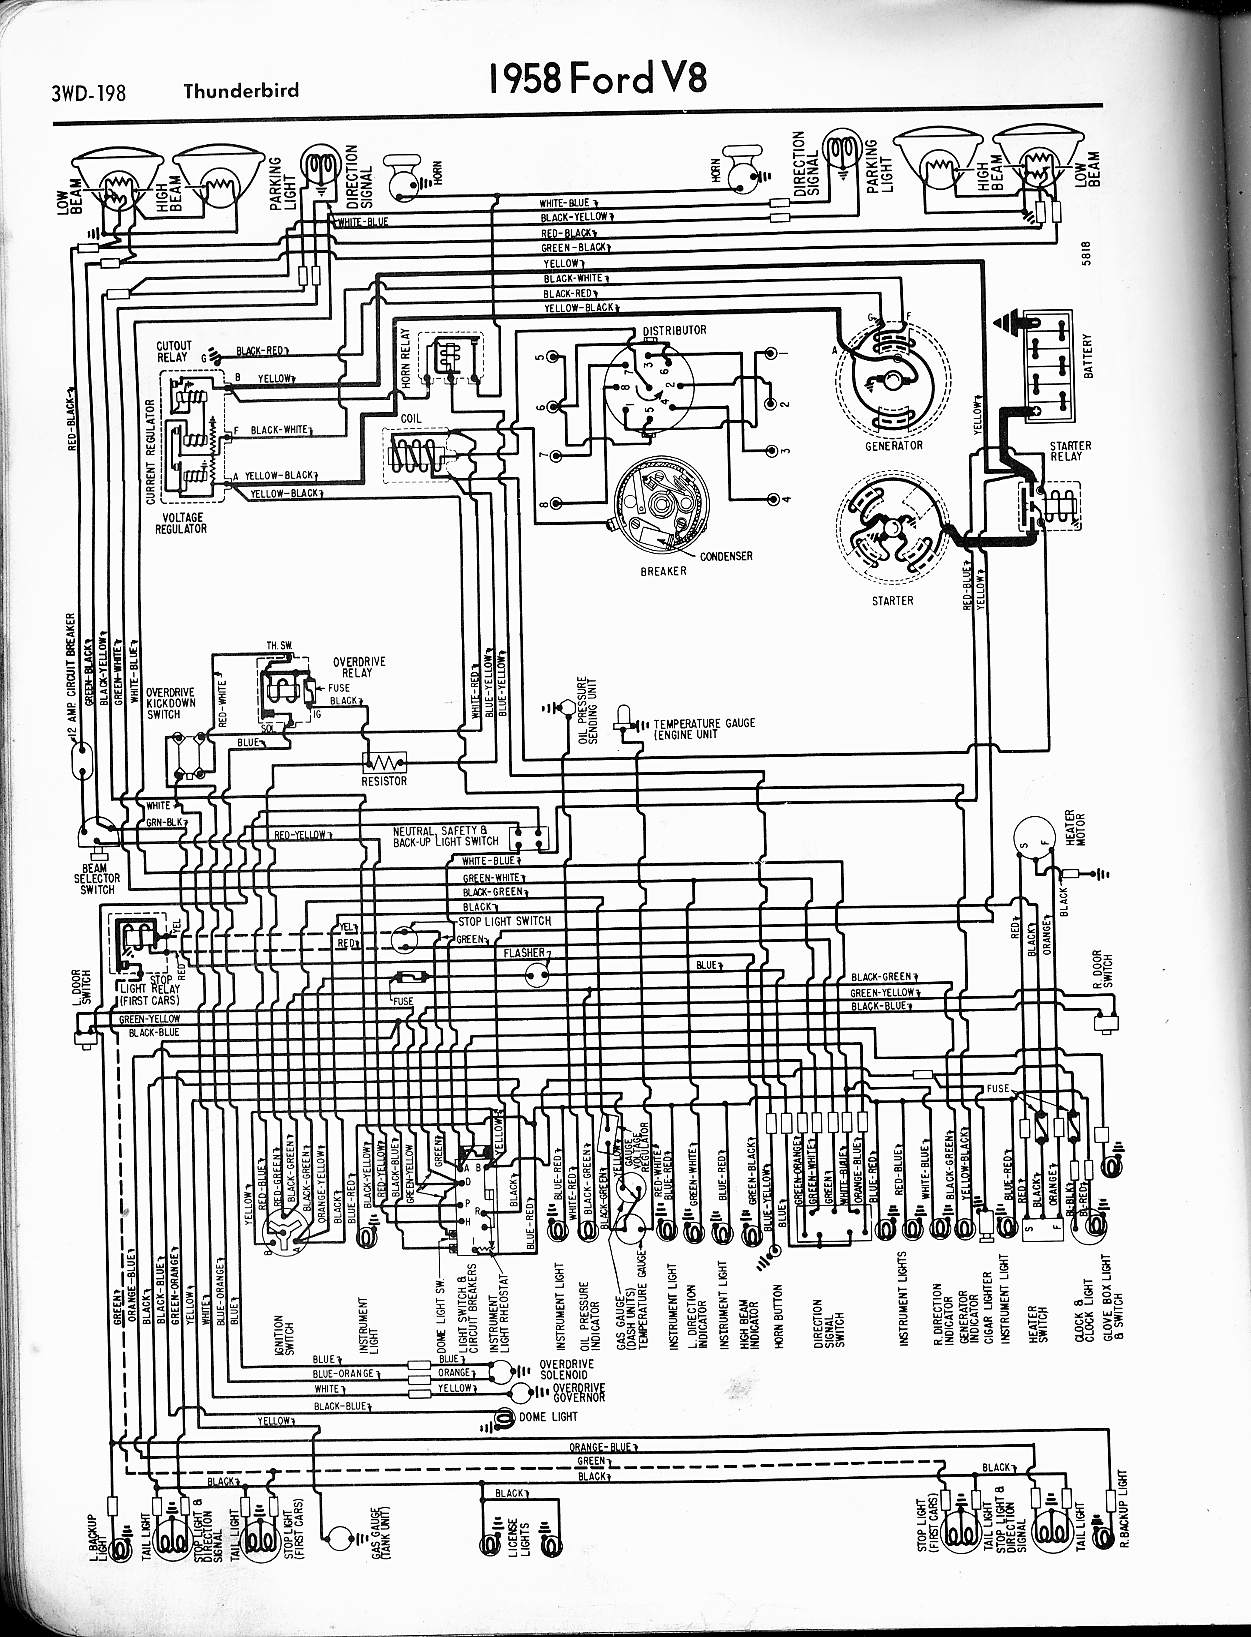 57 t bird wiring diagram example electrical wiring diagram u2022 rh olkha co